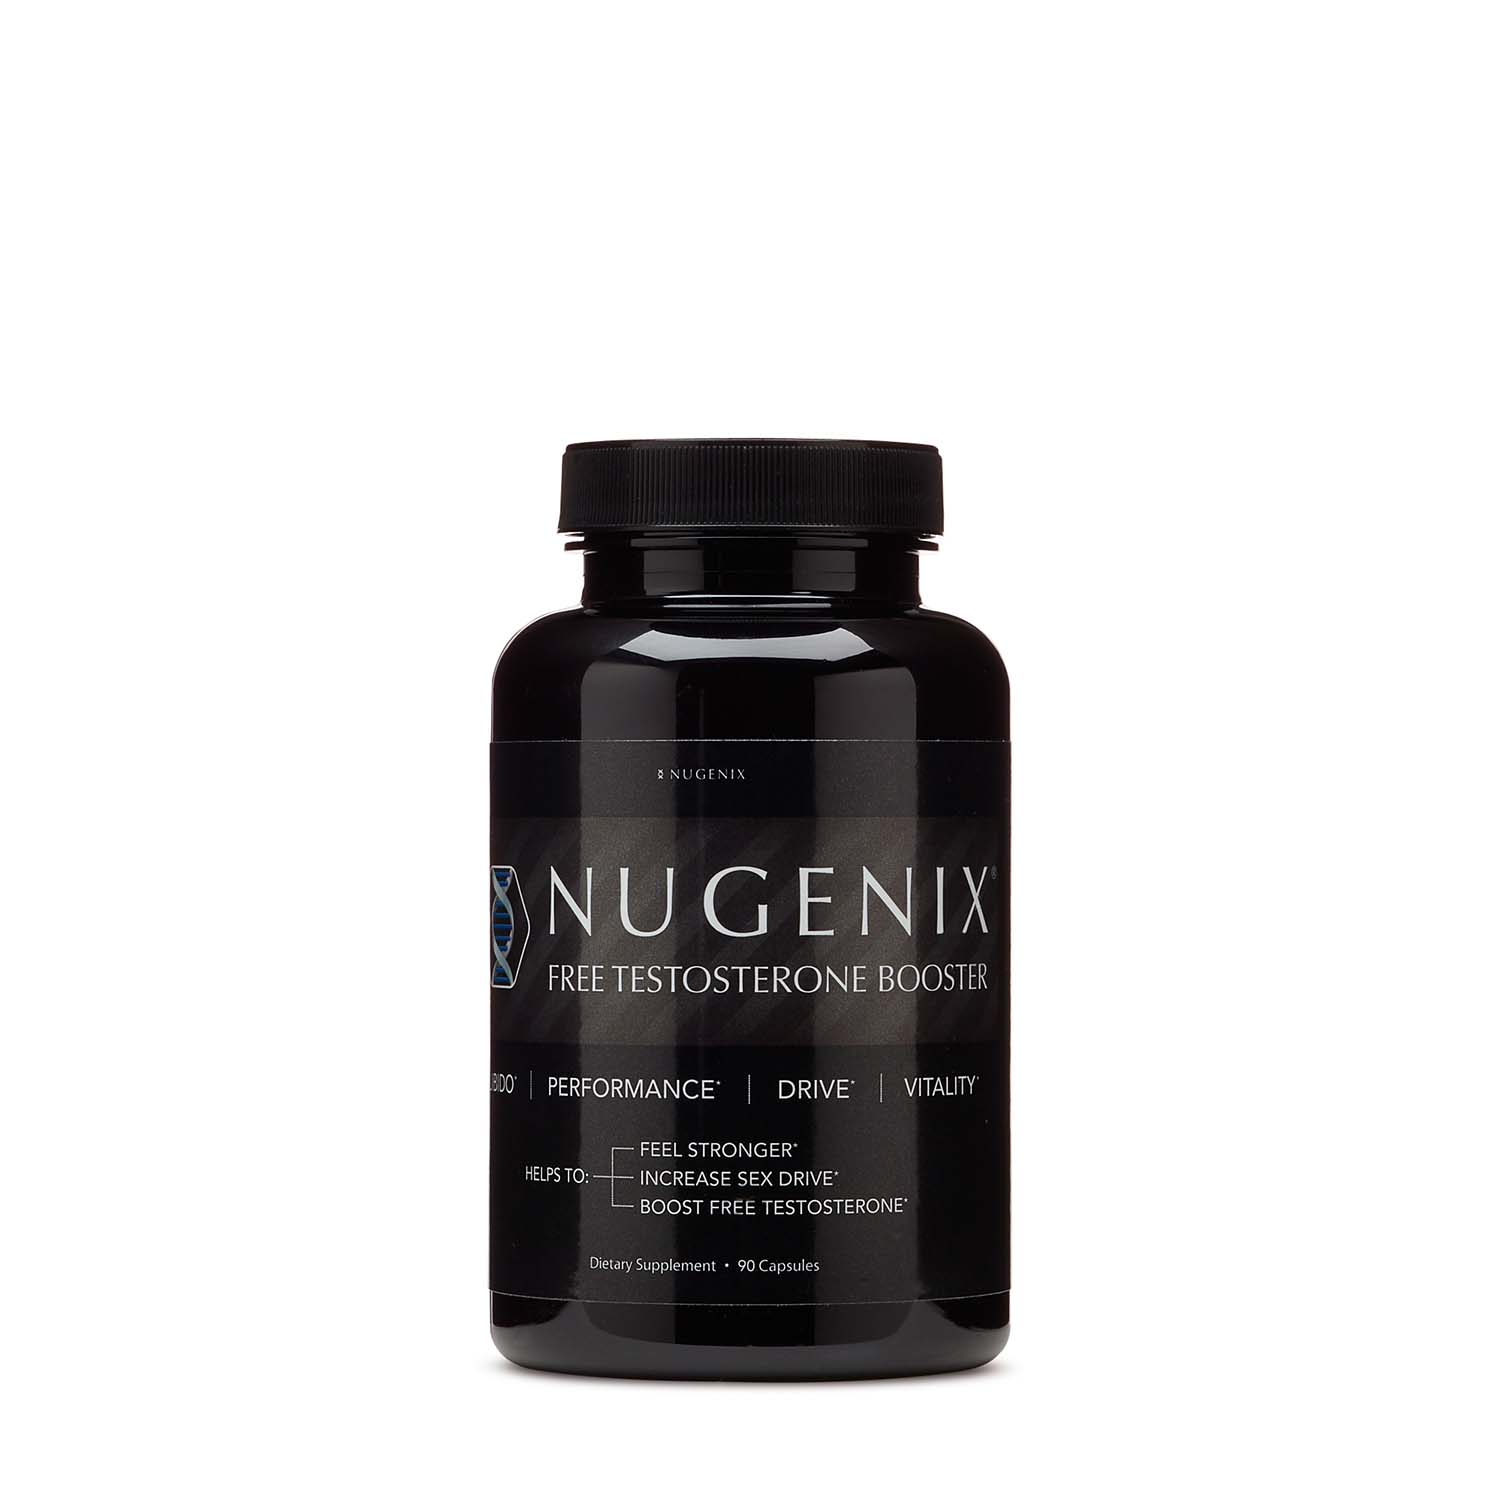 Nugenix testosterone booster gnc malvernweather Images